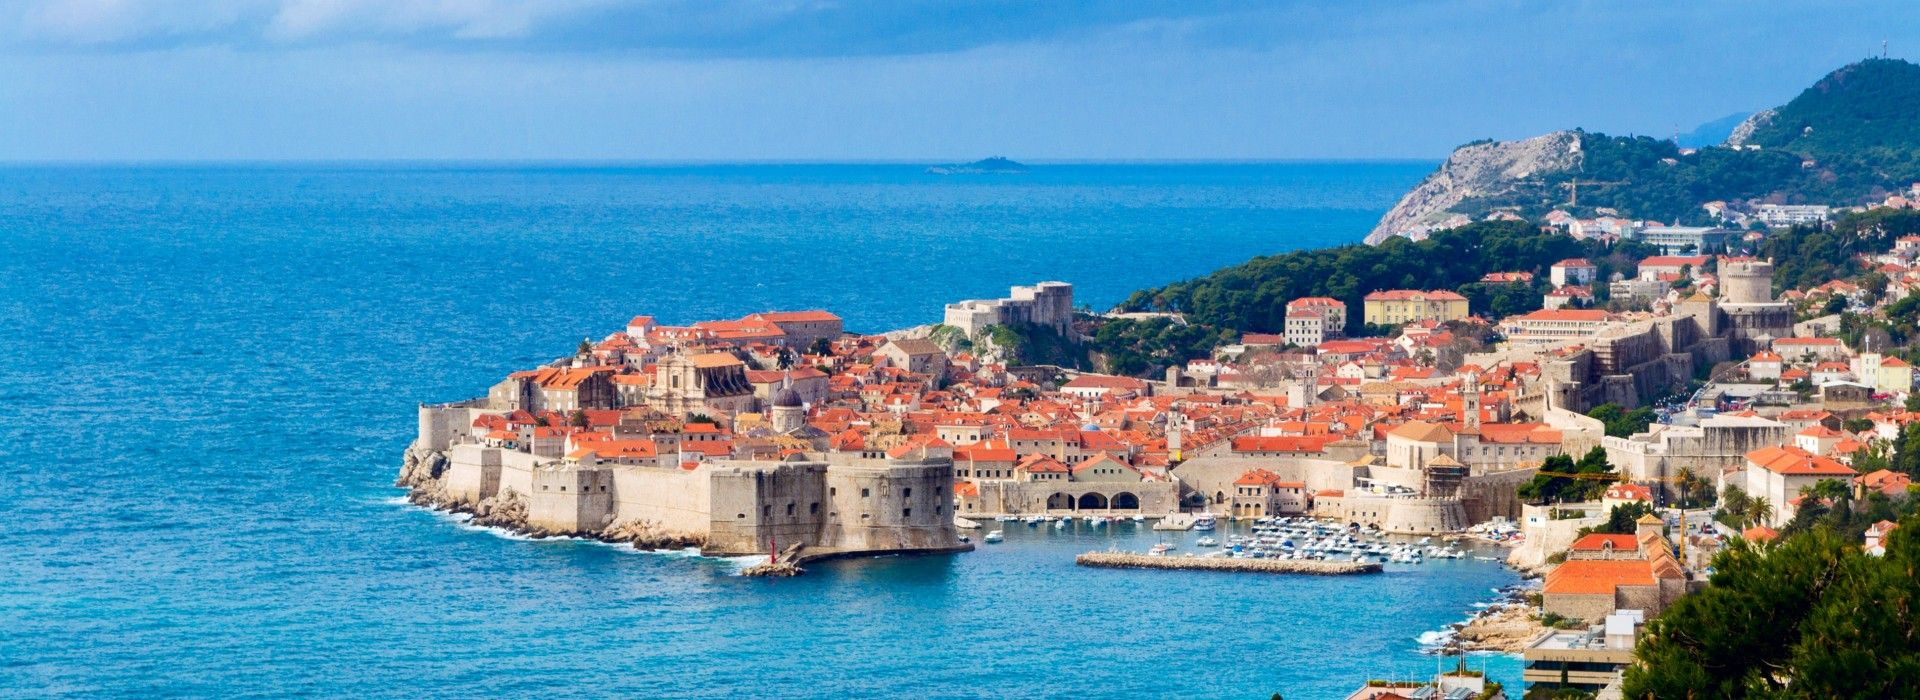 Sightseeing, attractions, culture and history Tours in Croatia